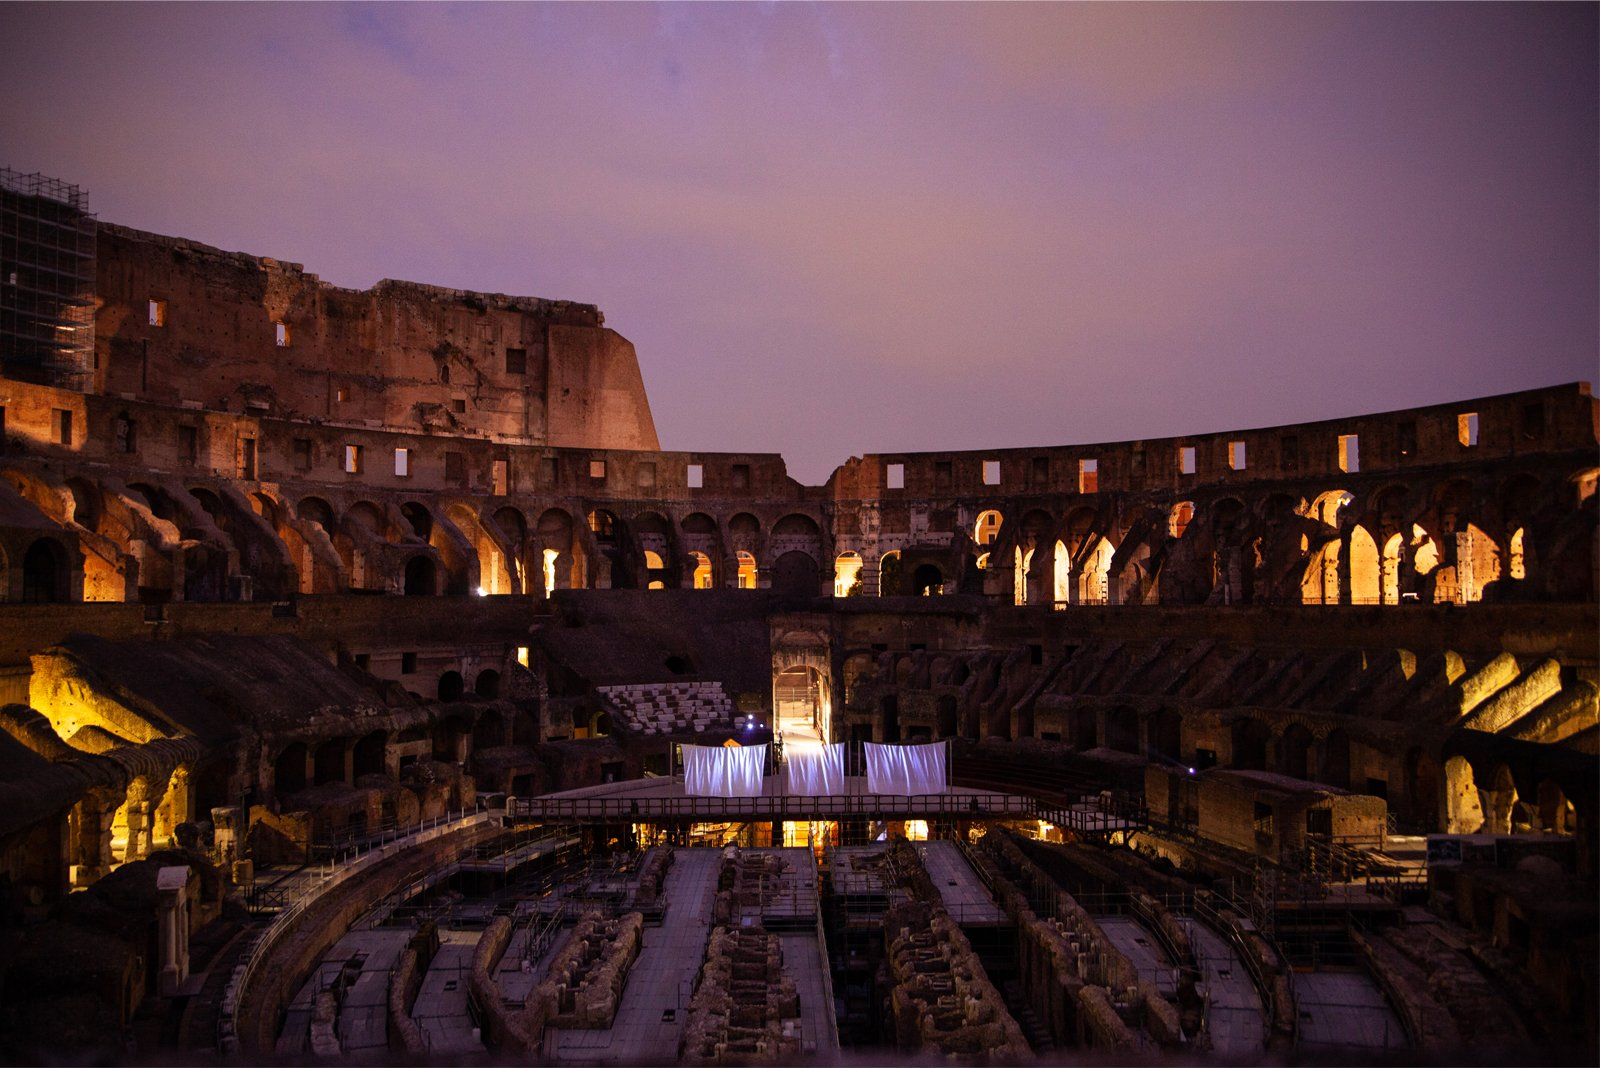 A view of the Colosseum in Rome, Italy at night